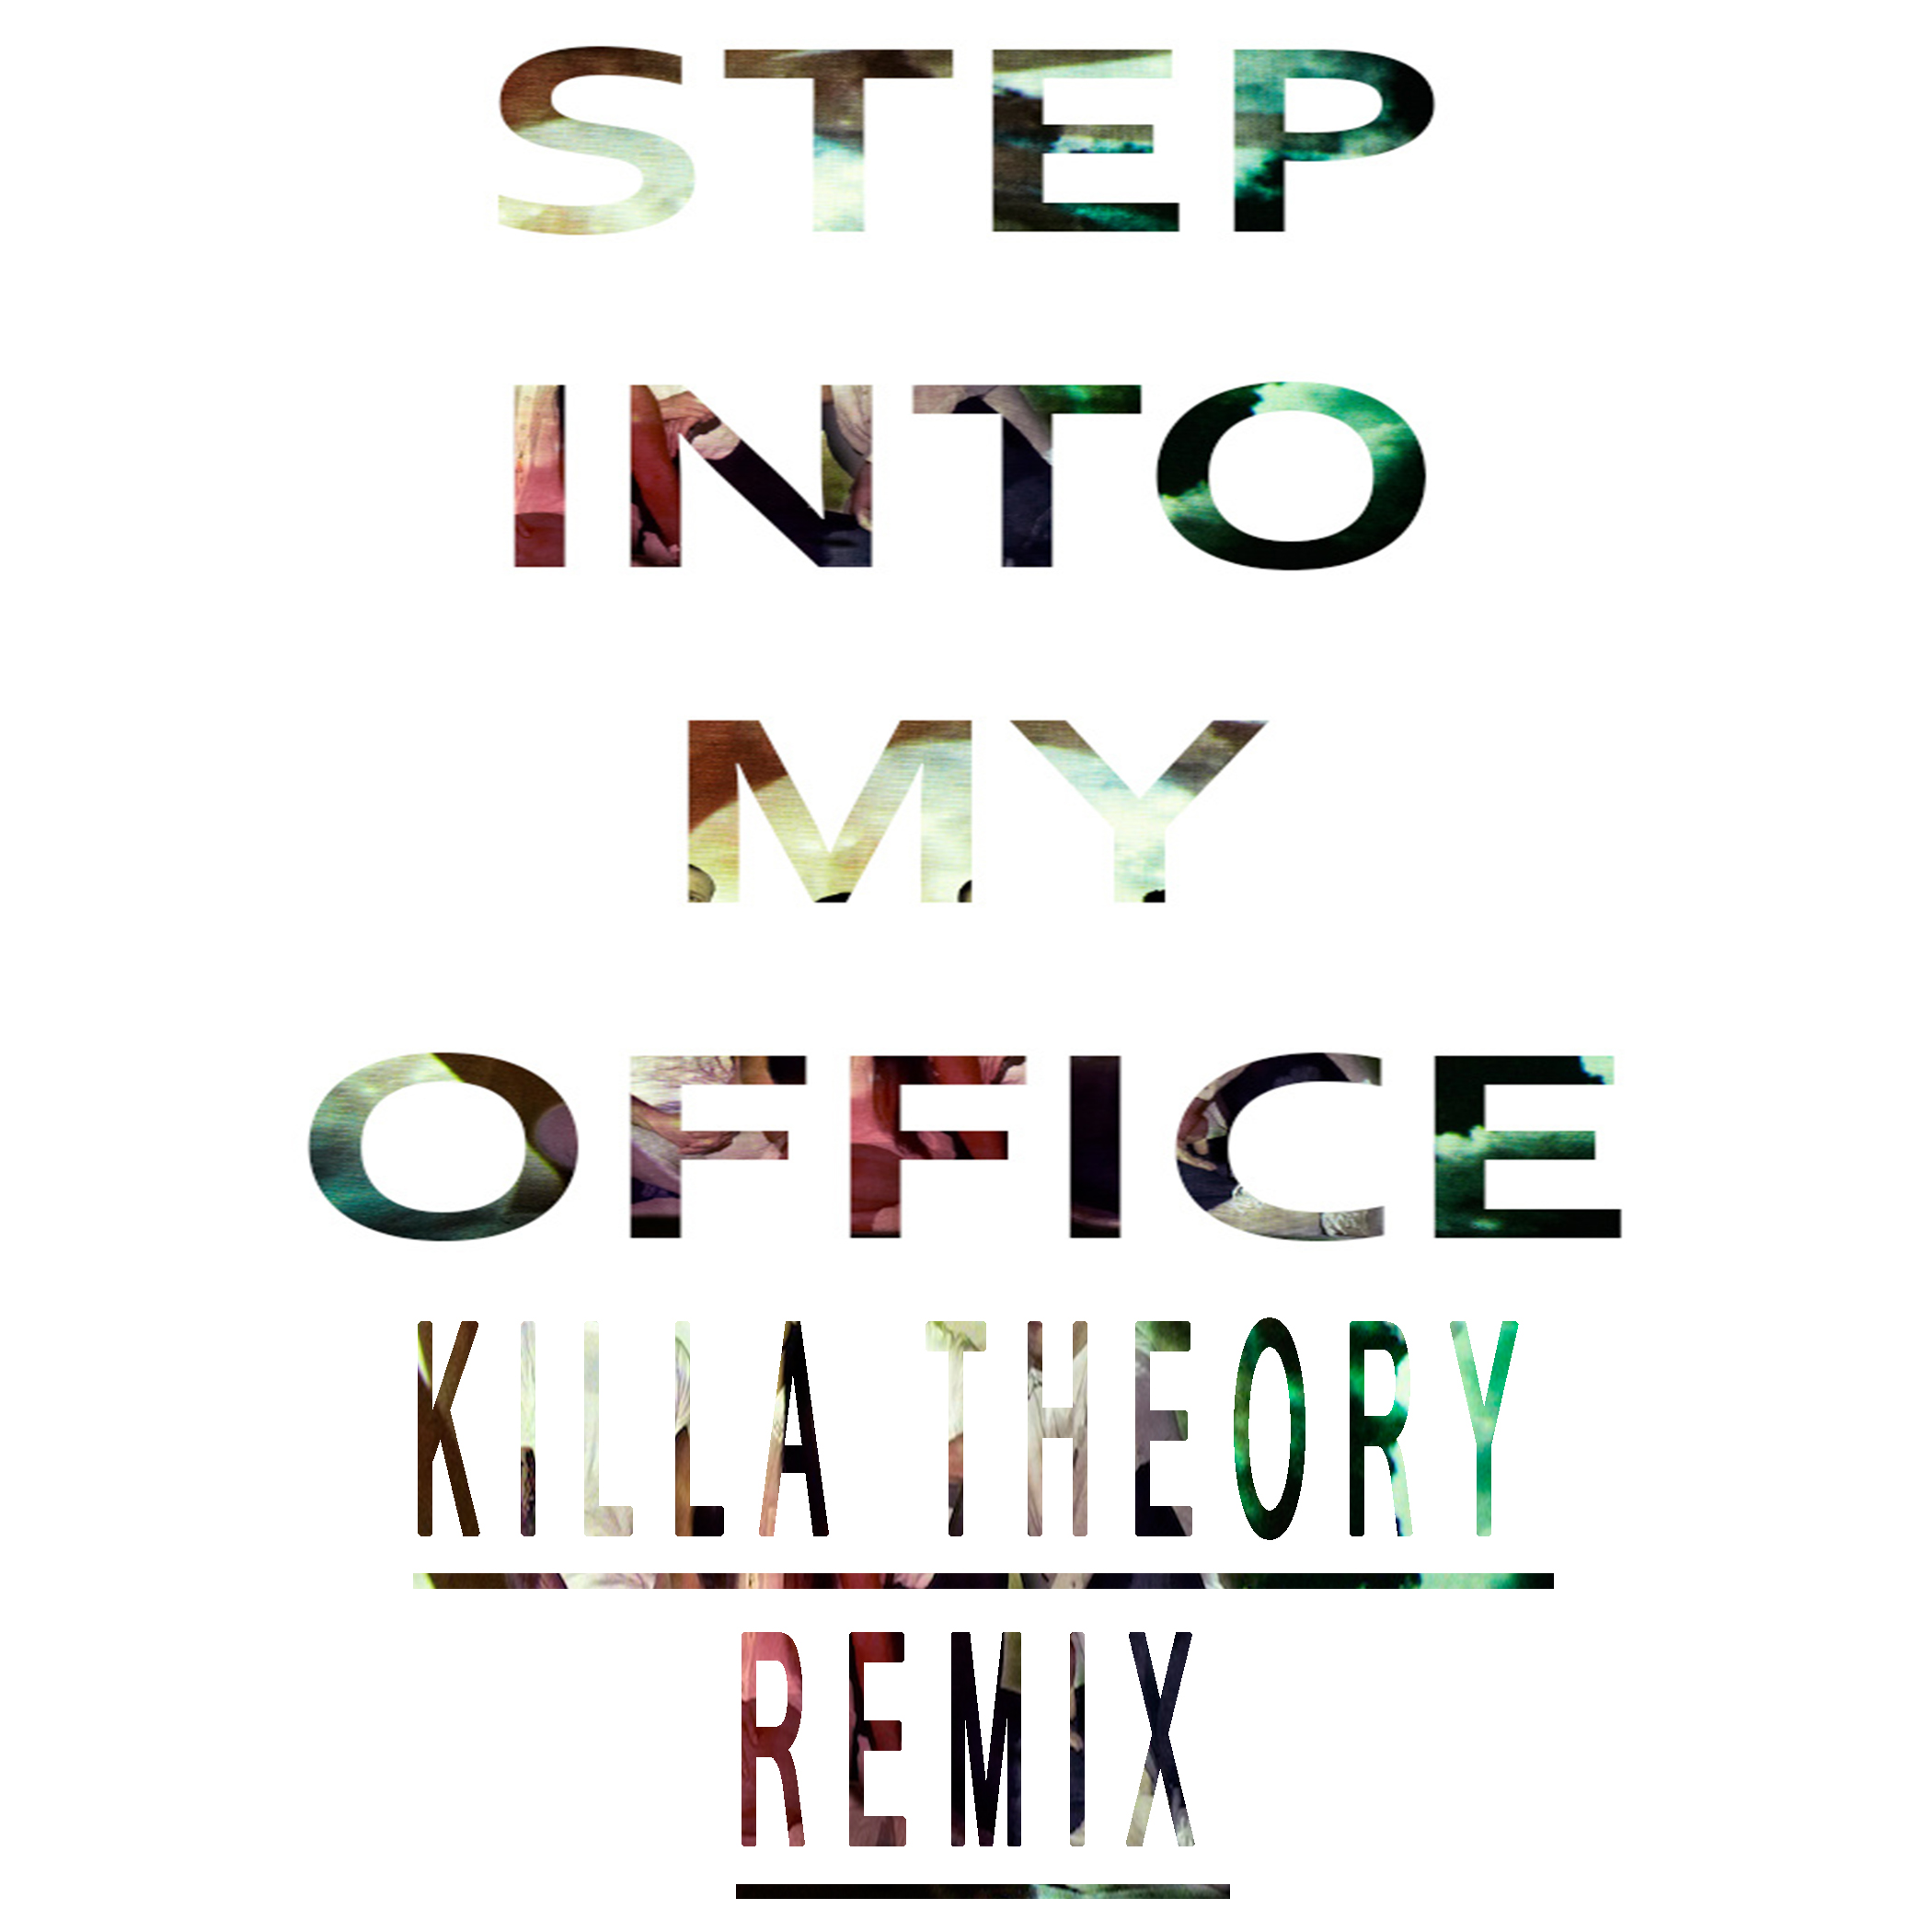 """June 19, 2014    Killa Theory  has added another exceptional remix to his ever growing catalog. This time he reworks """"Step Into My Office"""" by New York City based synth-pop ensemble   Blank Paper  . Killa Theory takes the light hearted, 80s influenced track, and infuses it with his trademark electro style. You can hear influences of dance and trap music, which makes the track ideal for clubbing and carousing on hot summer nights. Marie Kim's dreamy vocals over Theory's track, sounds like a match made in electro-pop heaven.  Killa Theory has been spinning all over New York in recent months, and his high-intensity live show is starting to gain the attention of electronic music lovers everywhere. Blank Paper has also gained popularity in NYC's music scene and are scheduled to play Brooklyn's notorious   Glasslands   on July 2. You can also catch Killa Theory spinning frequently at NYC's lower east side hot spot   The Delancey  .   by   Winston E. Brewington, Jr., Earmilk Contributor"""